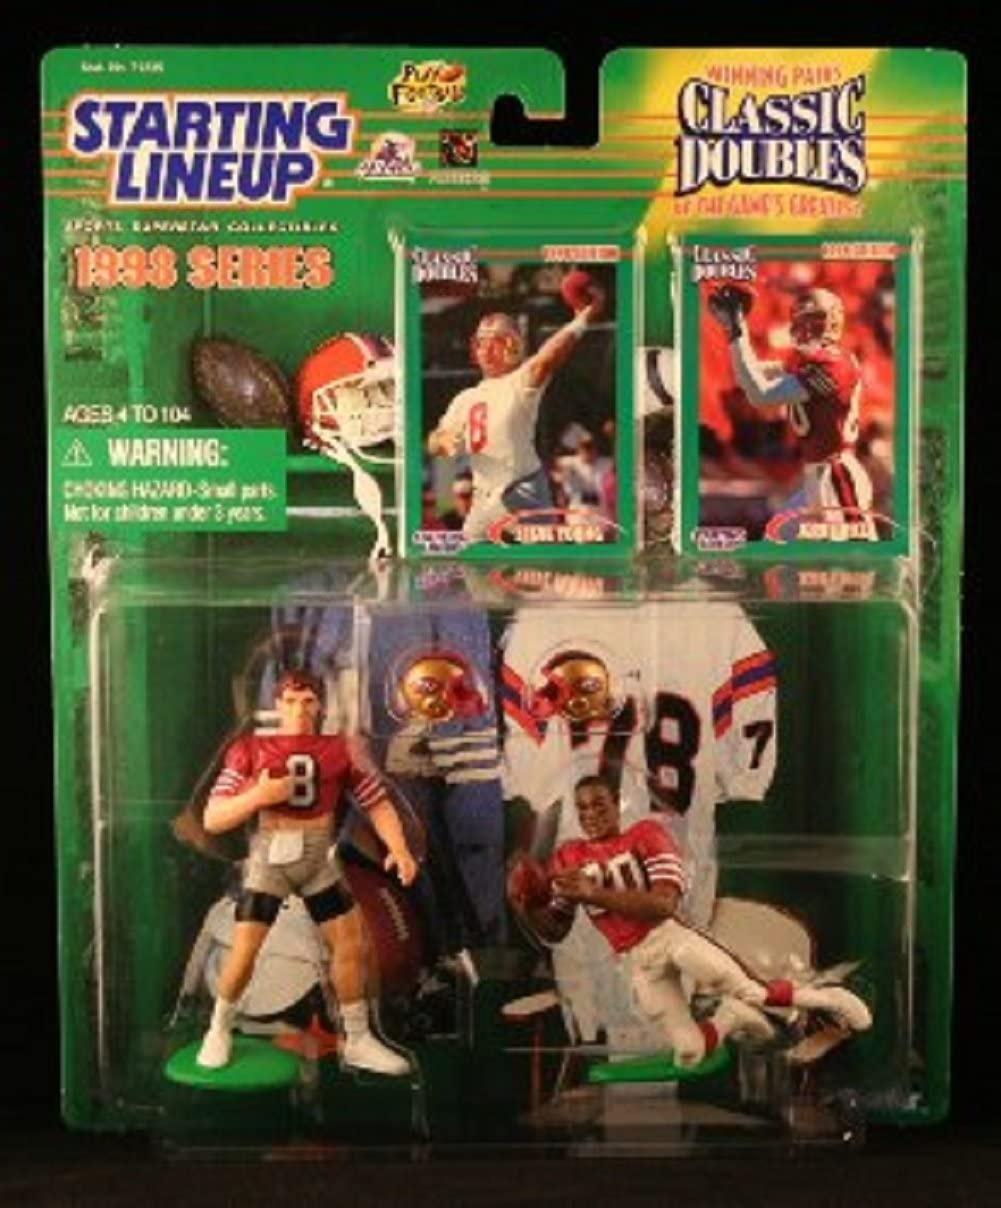 Amazon Com Starting Lineup Steve Young San Francisco 49ers Jerry Rice San Francisco 49ers 1998 Nfl Classic Doubles Winning Pairs Action Figures Exclusive Collector Trading Cards Sports